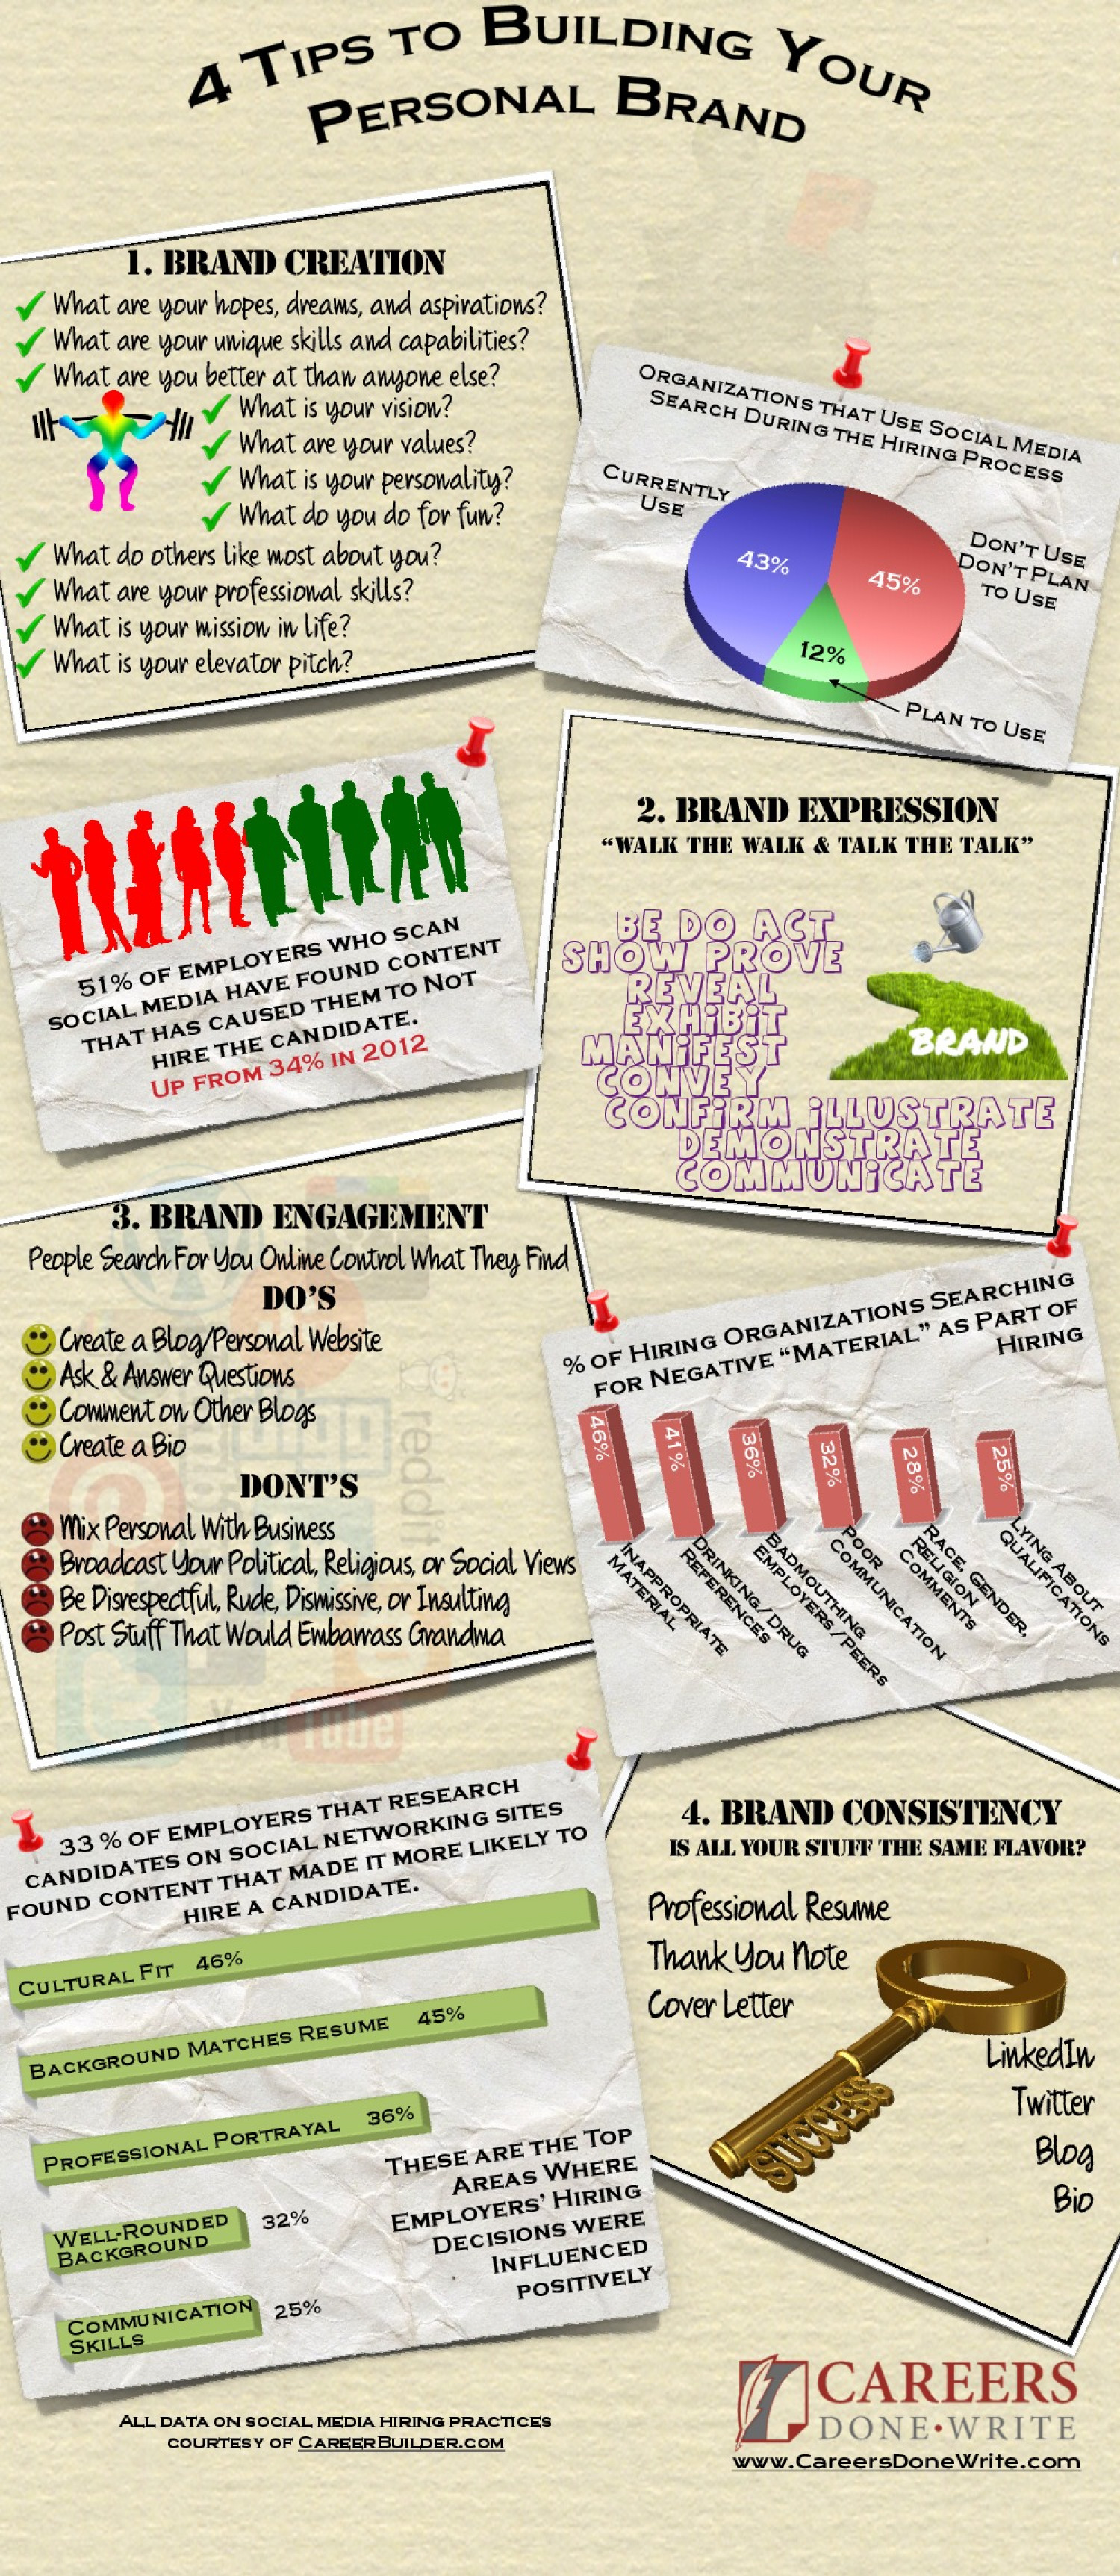 4 Tips to Building Your Personal Brand Infographic